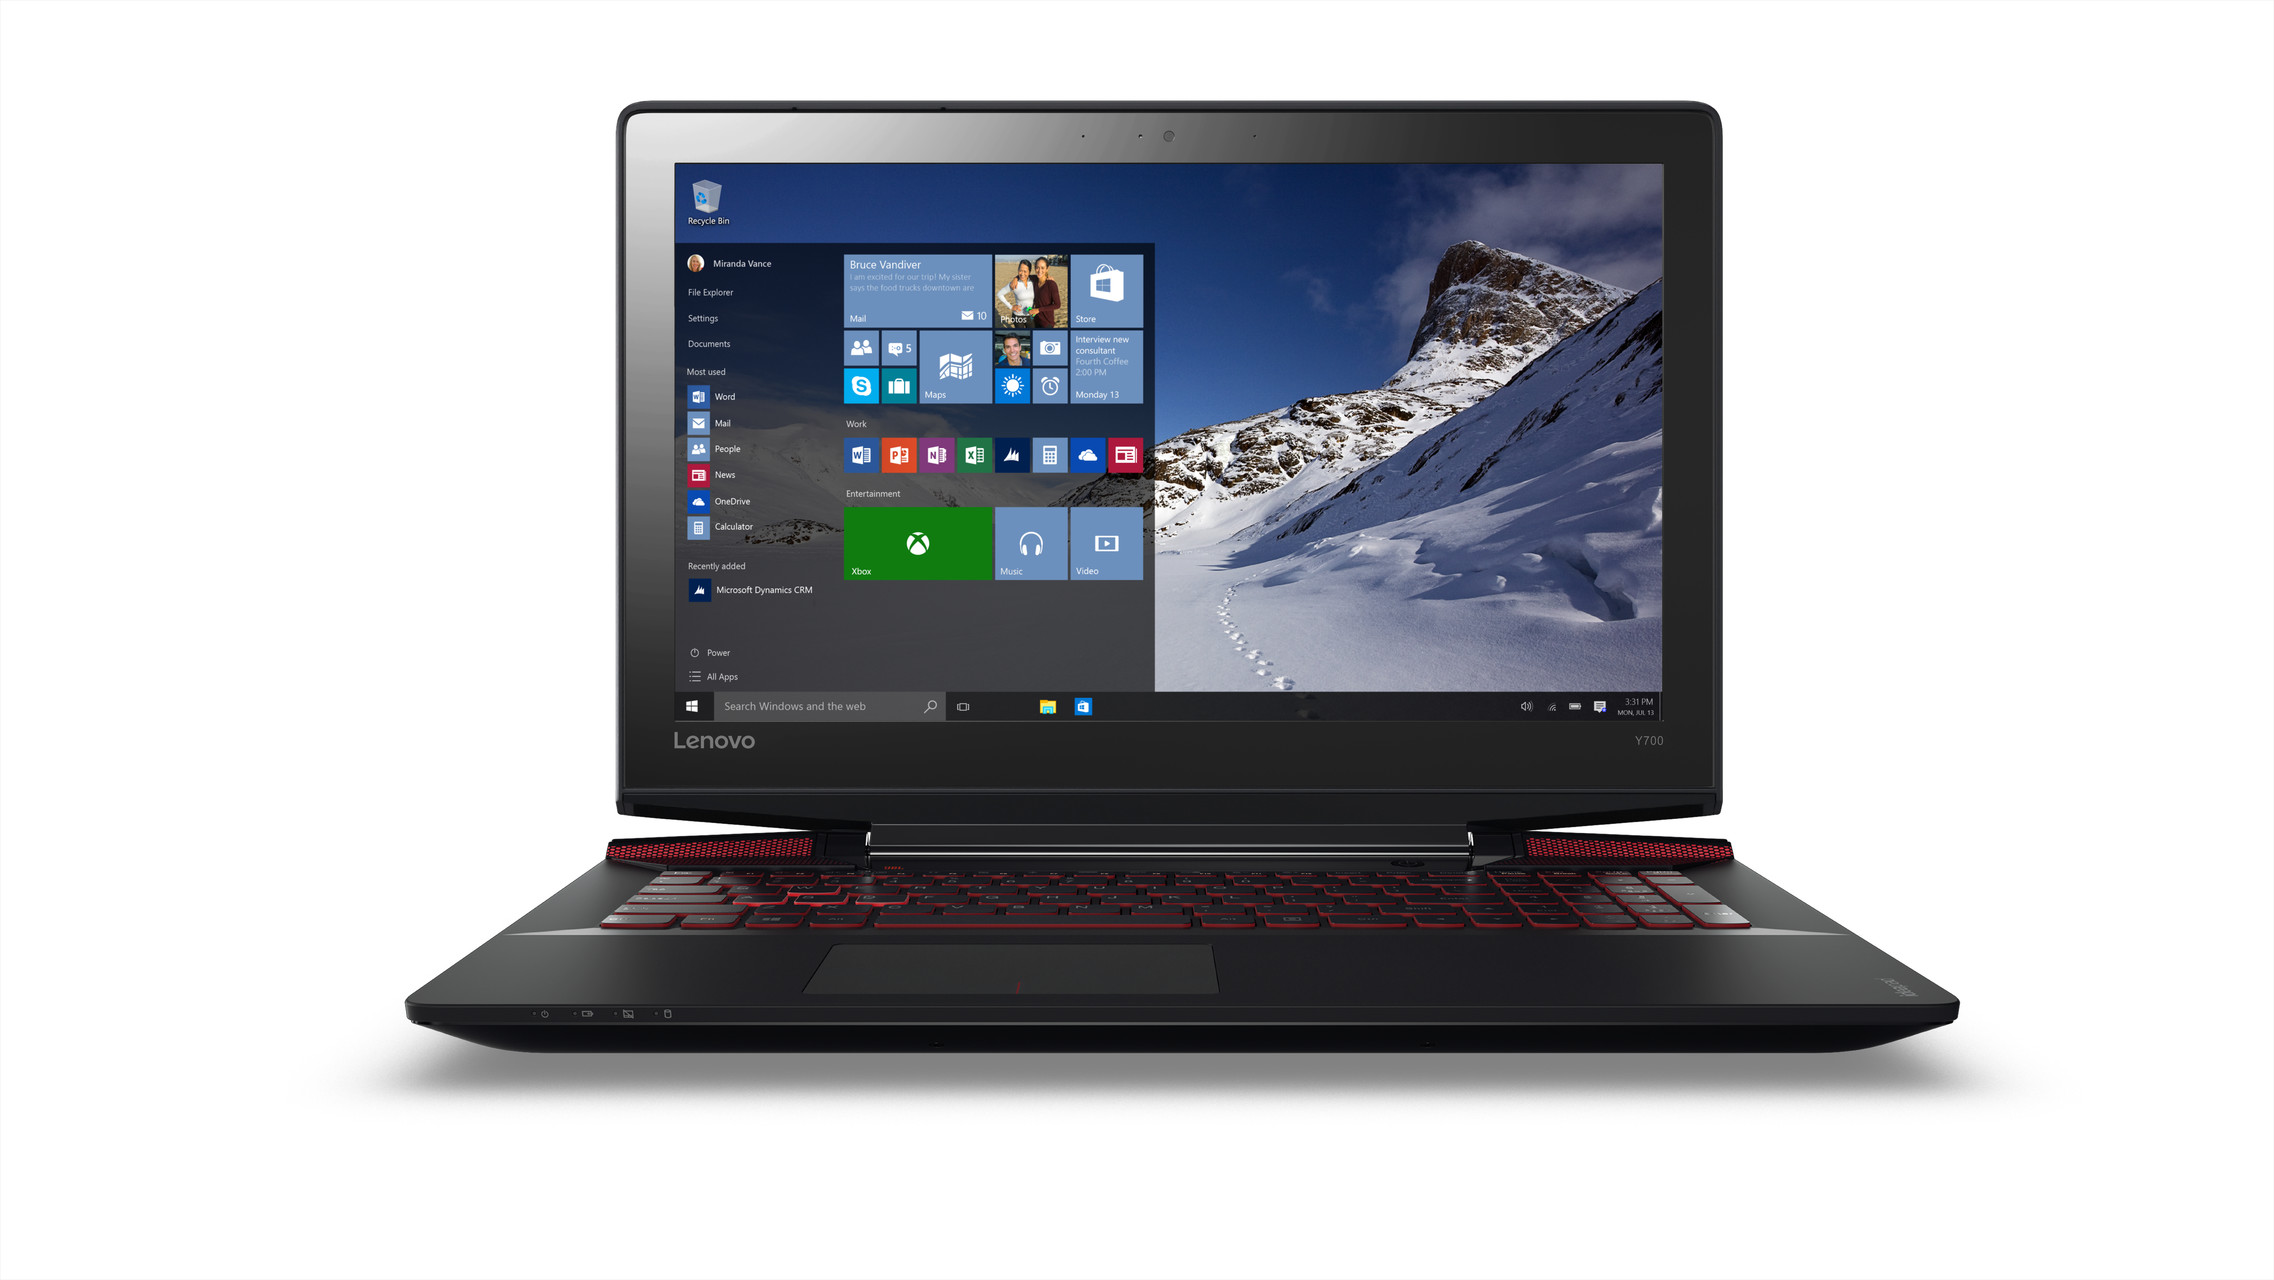 "Lenovo IdeaPad Y700 i7-6700HQ 3,50GHz/16GB/256GB SSD+1TB HDD/15,6"" FHD/IPS/AG/GeForce 4GB/3DCAM/WIN10 černá 80NV00VWCK"